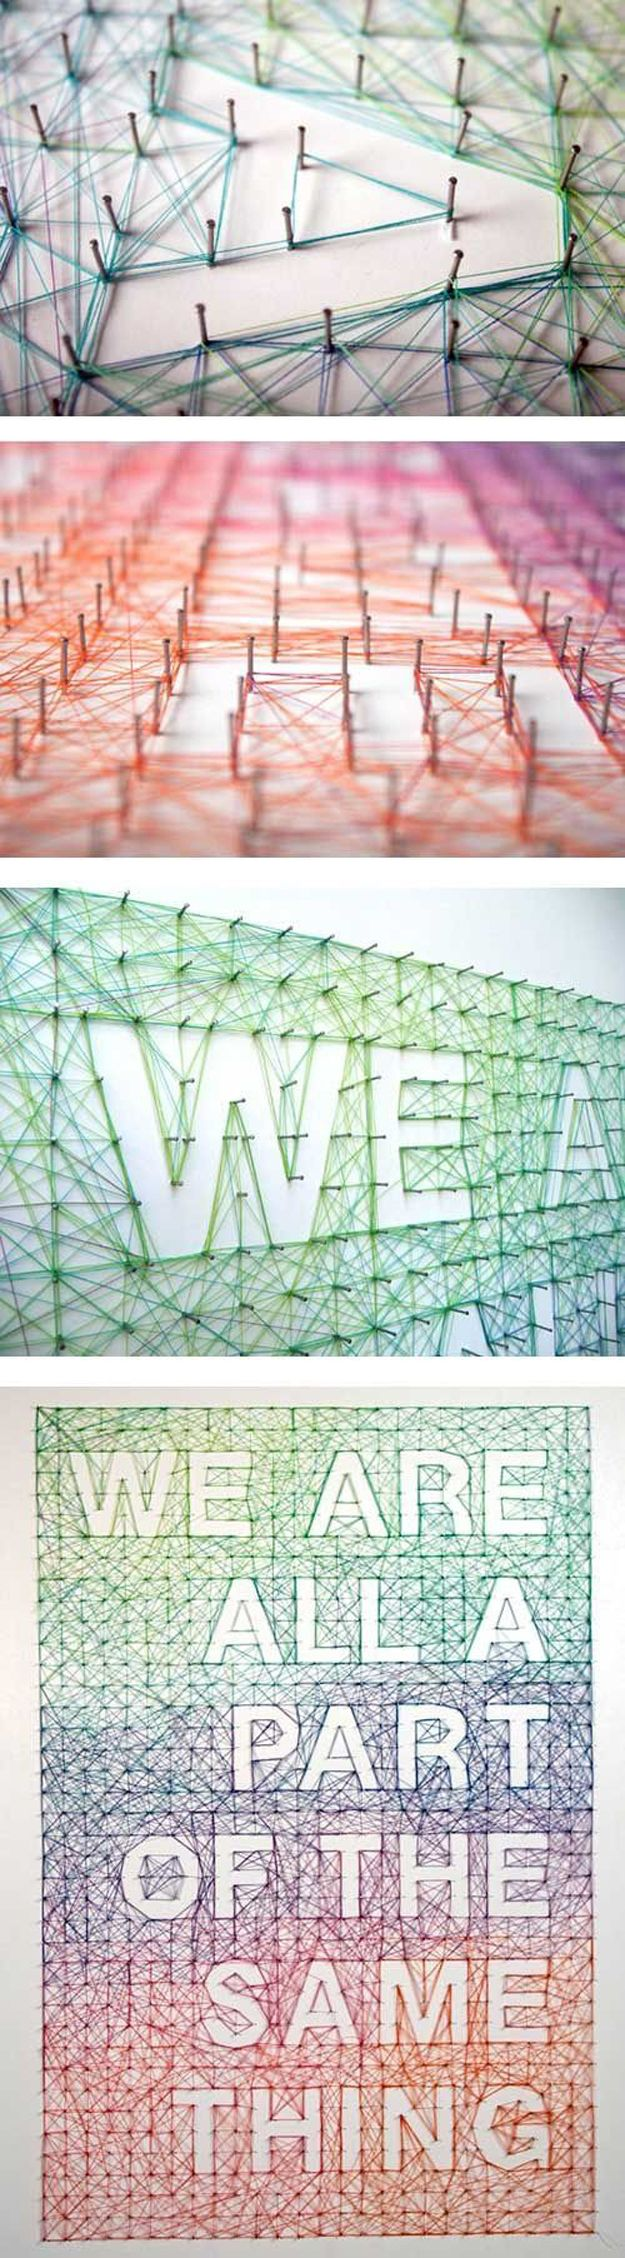 Cool DIY String Wall Quote Ideas | http://diyready.com/12-easy-diy-string-art-ideas-to-hang-in-your-home/